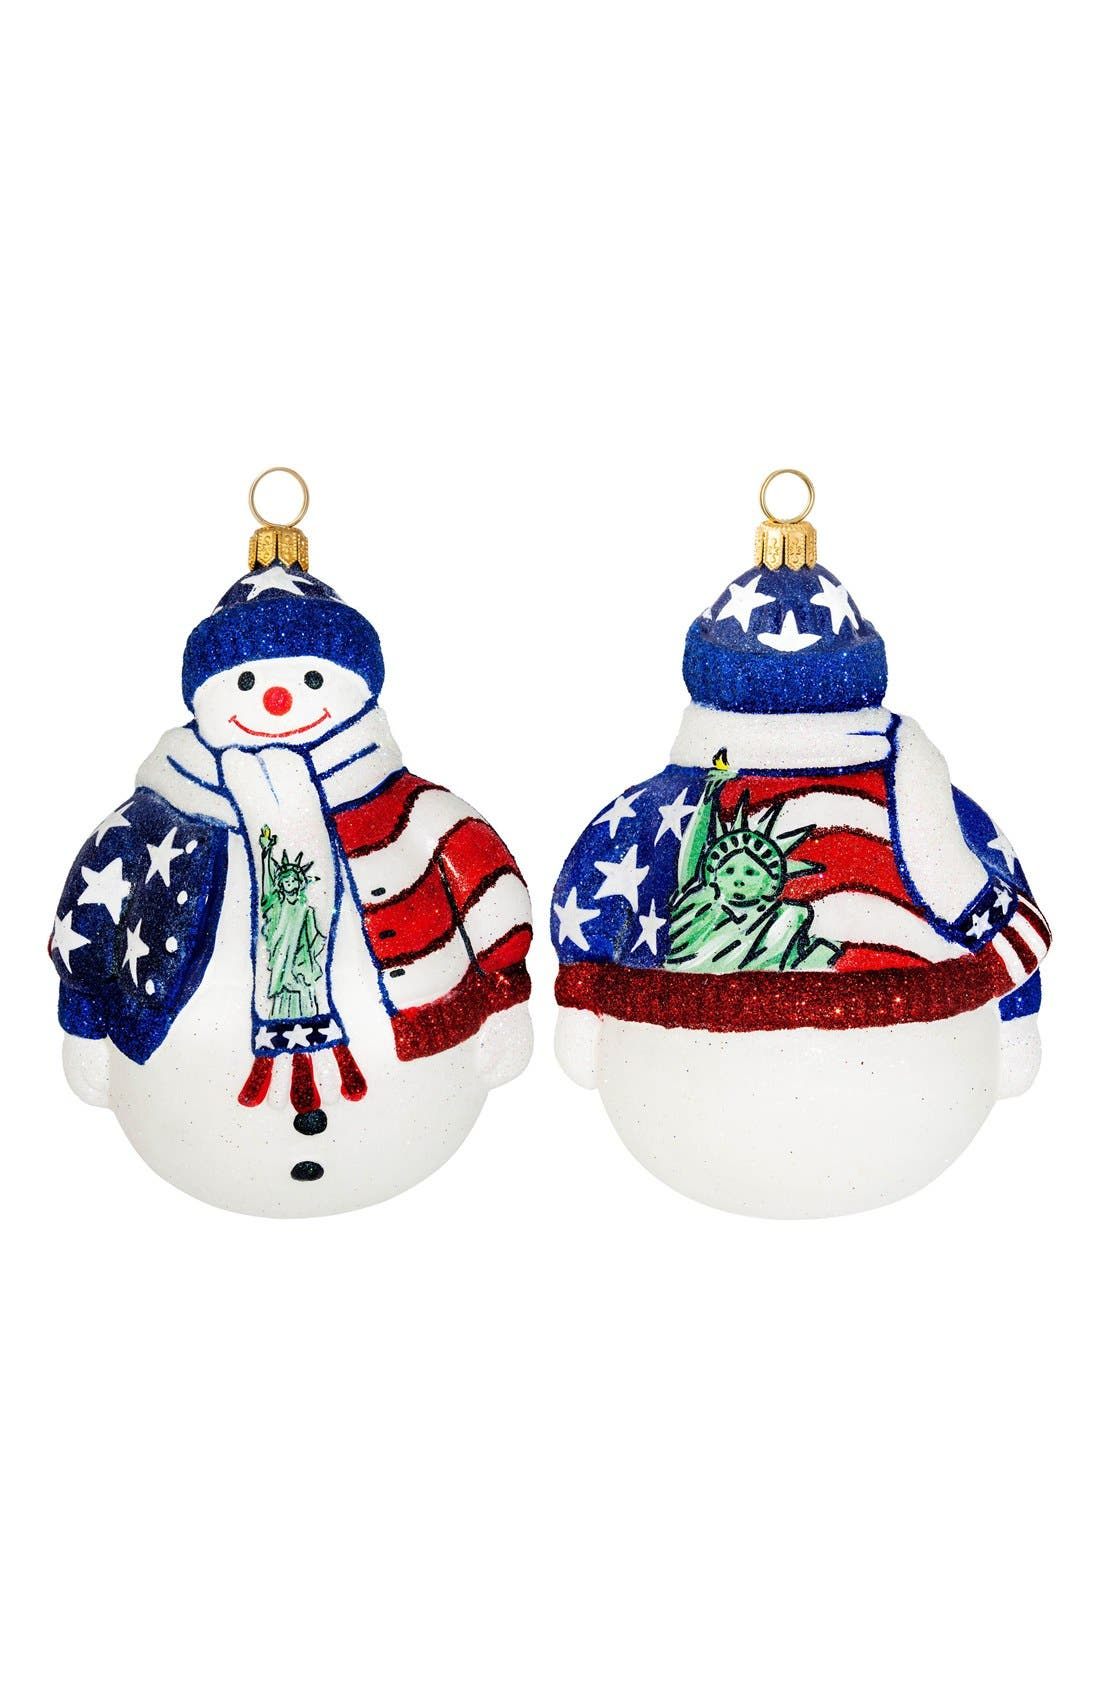 'Land of the Free' Snowman Ornament,                         Main,                         color, Red/ White/ Blue